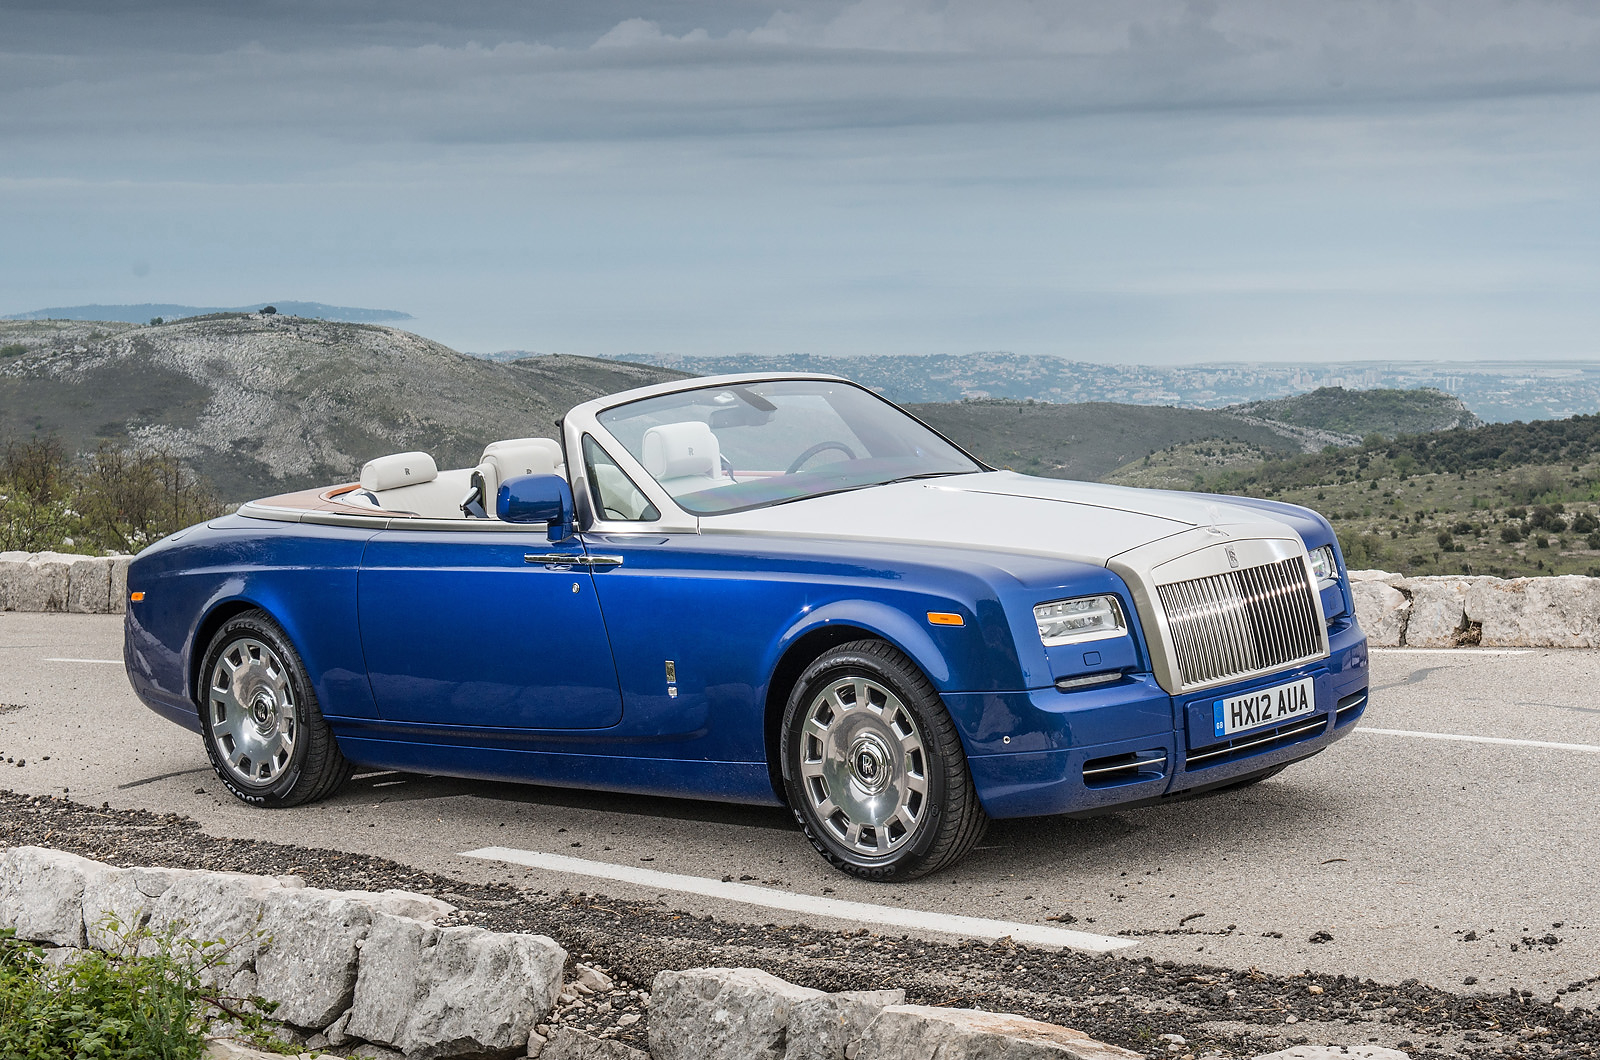 2012 Rolls royce Phantom Drophead Coupe #3